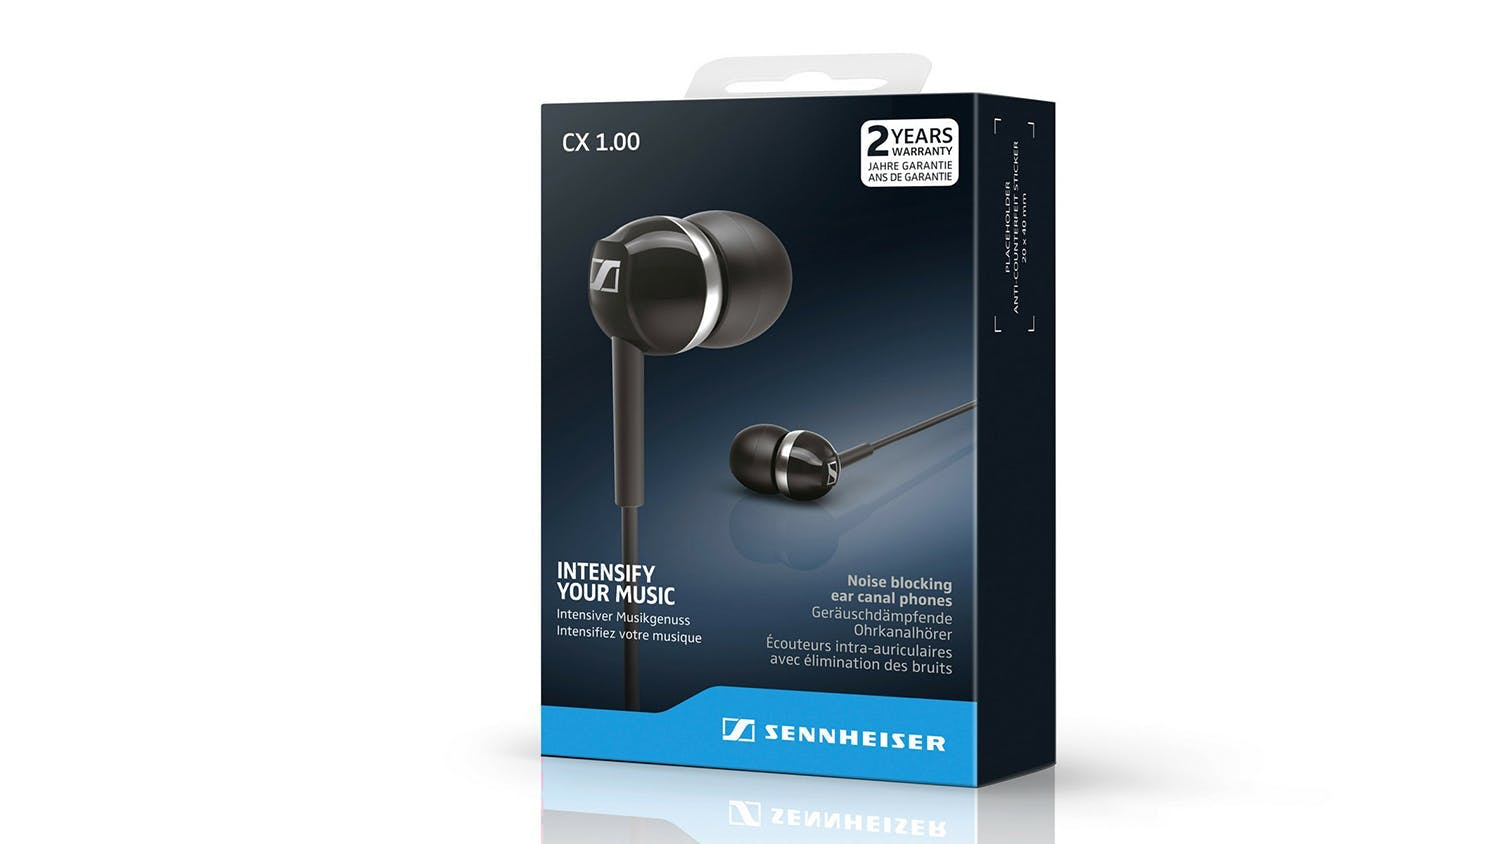 Sennheiser CX 1.00 In-Ear Headphones